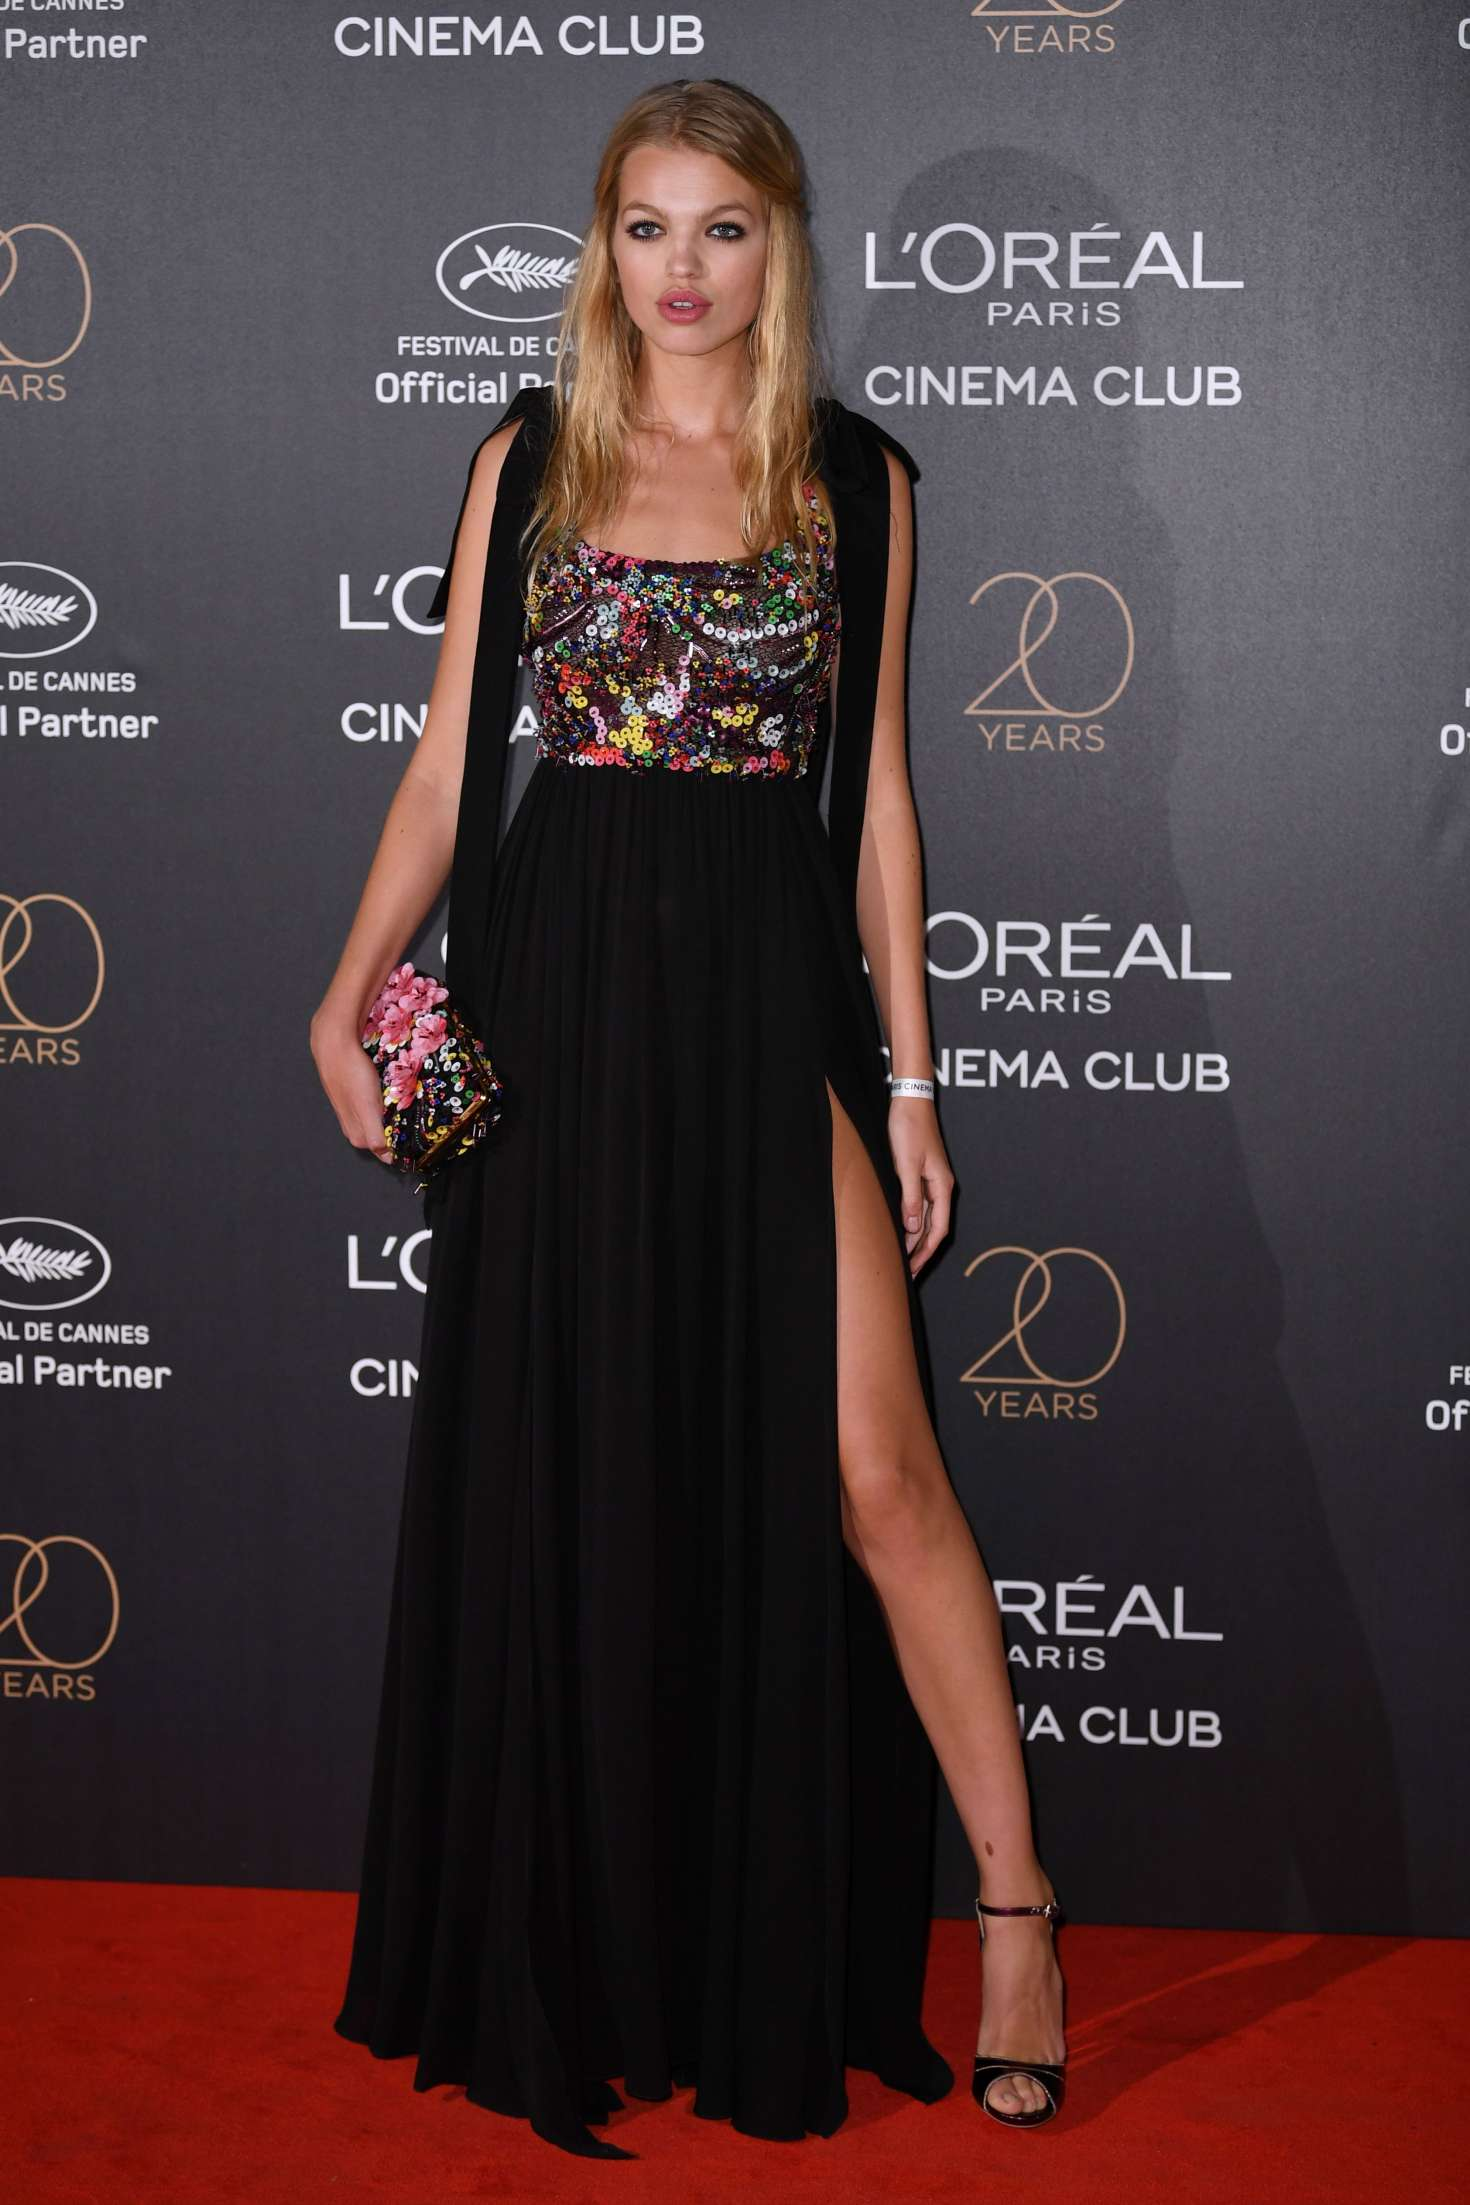 Daphne Groeneveld 2017 : Daphne Groeneveld: LOreal 20th Anniversary Party in Cannes -02